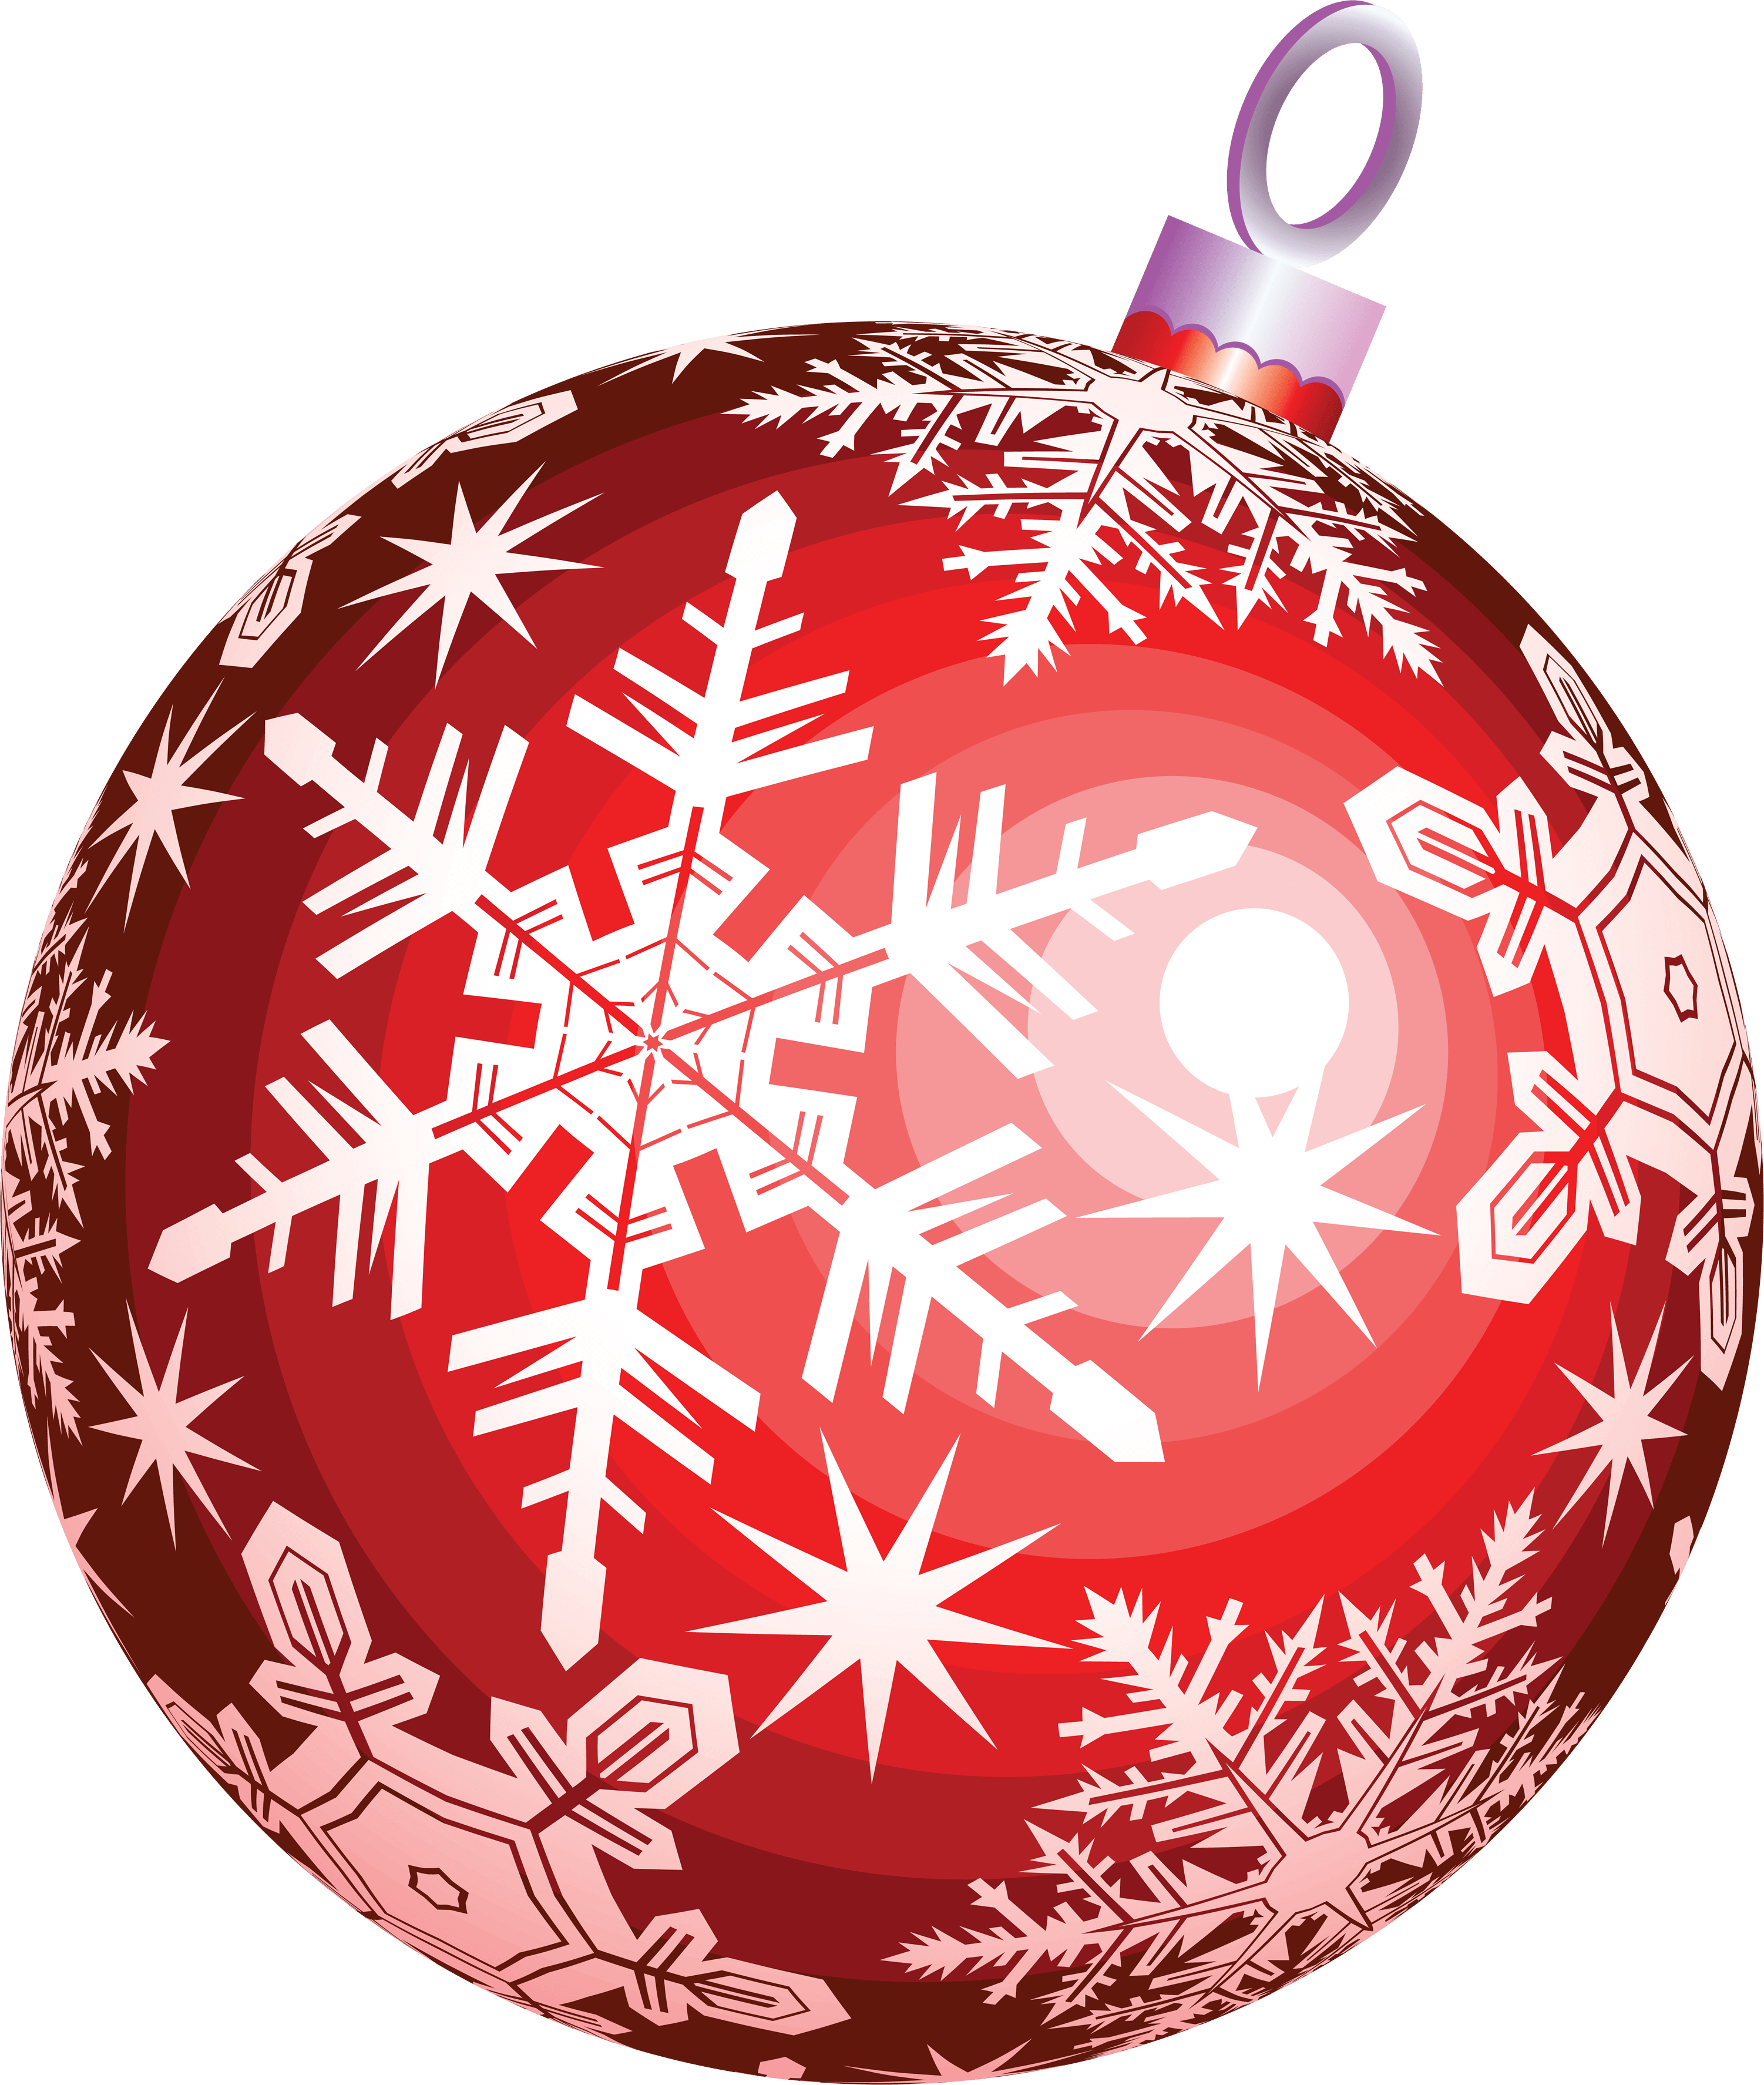 Red christmas ornament clipart jpg royalty free library Red Christmas Ball Toy Png Image jpg royalty free library